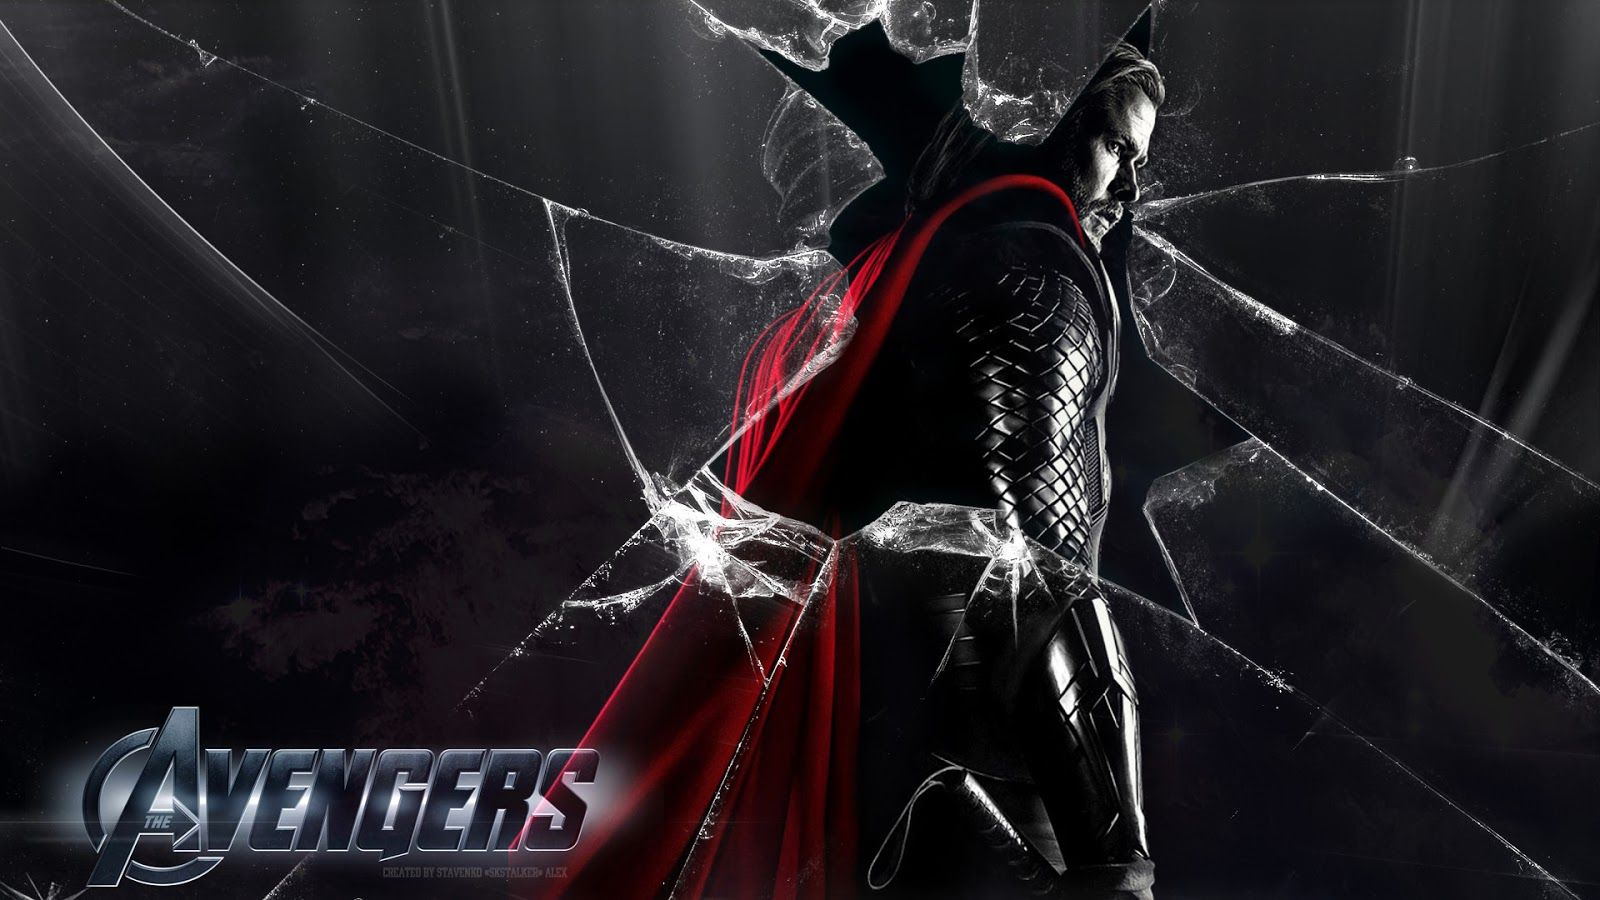 Thor From The Avengers Next Hd